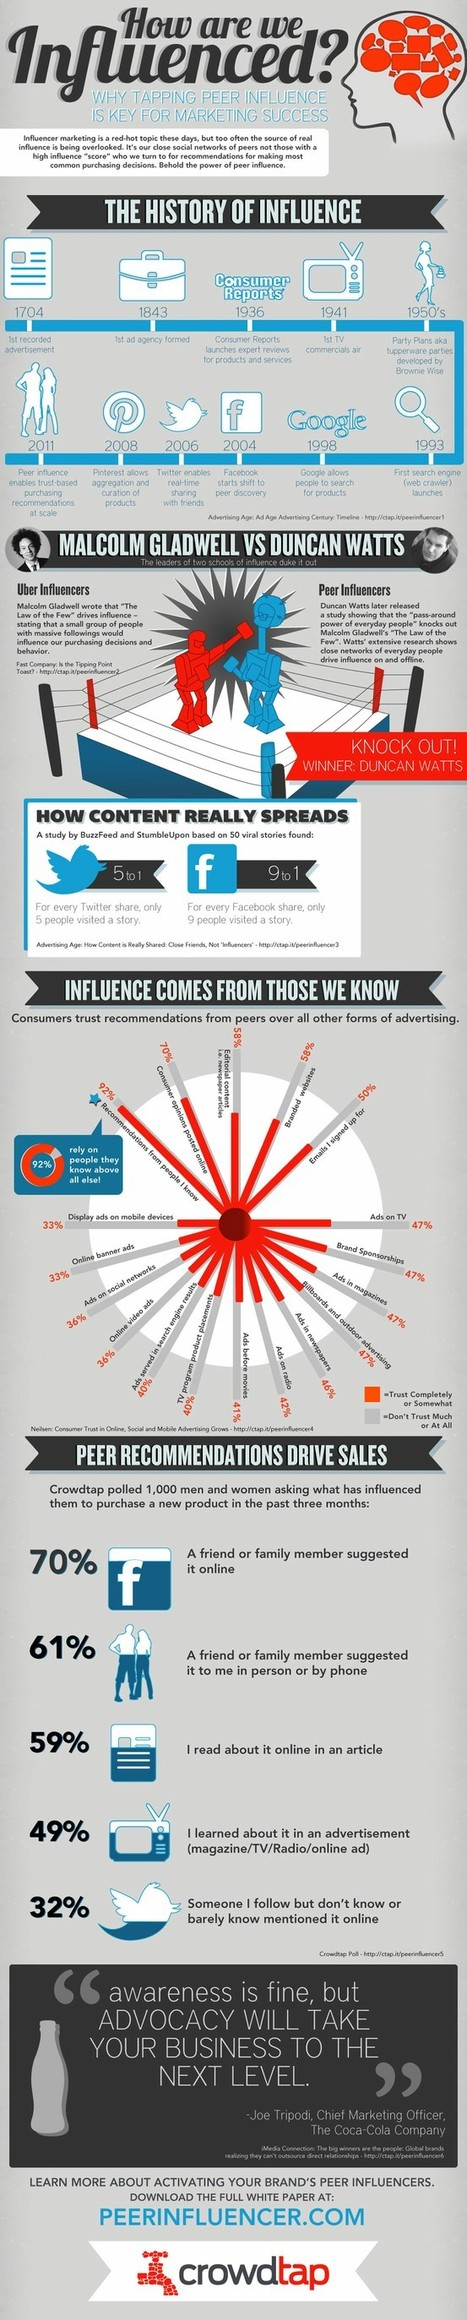 Who Are the Real Influencers? [Infographic] | social media and curation | Scoop.it